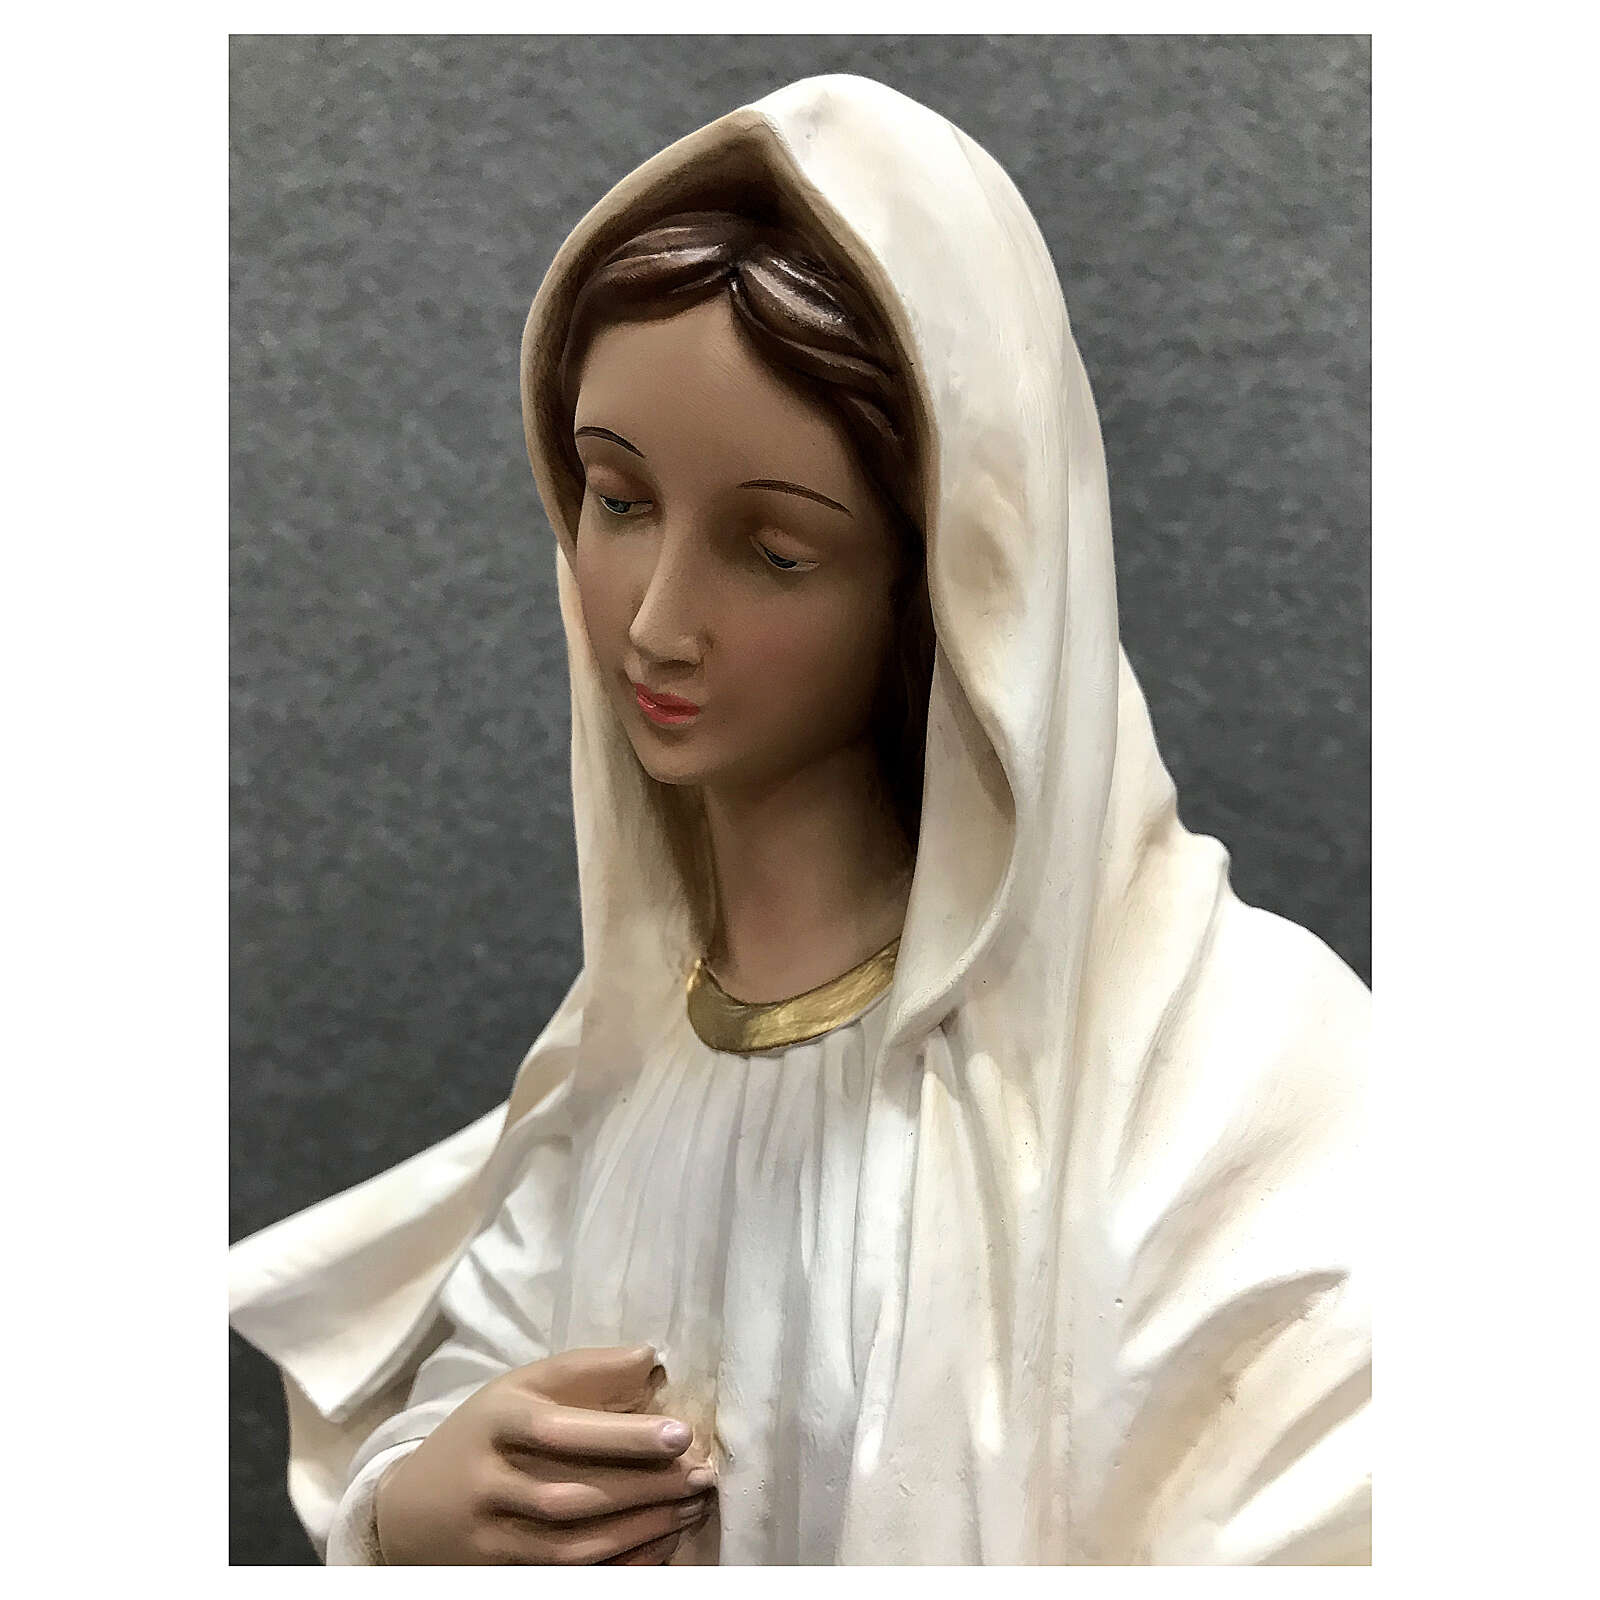 Our Lady of Medjugorje statue white tunic 60 cm painted resin 4